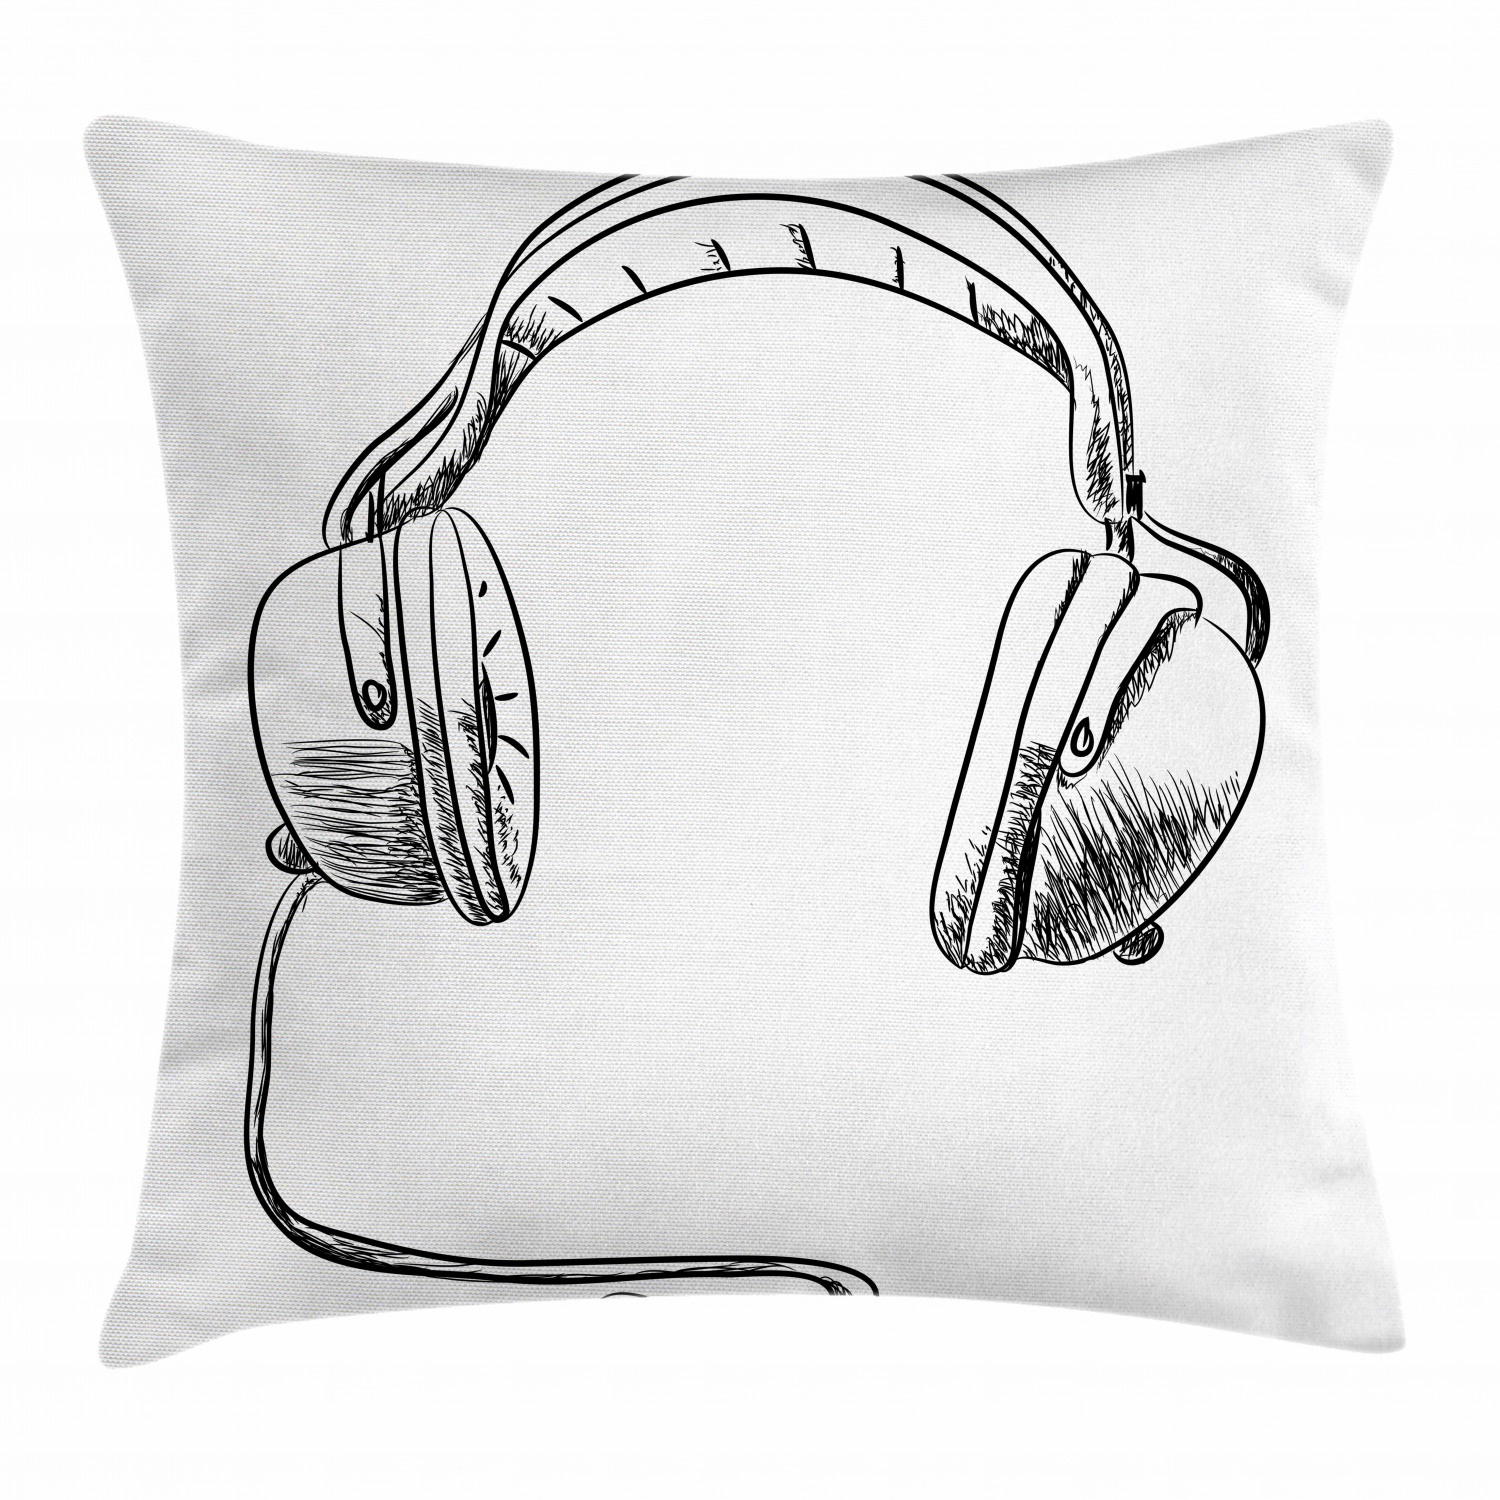 Vintage Drawing Throw Pillow Cases Cushion Covers Home ...